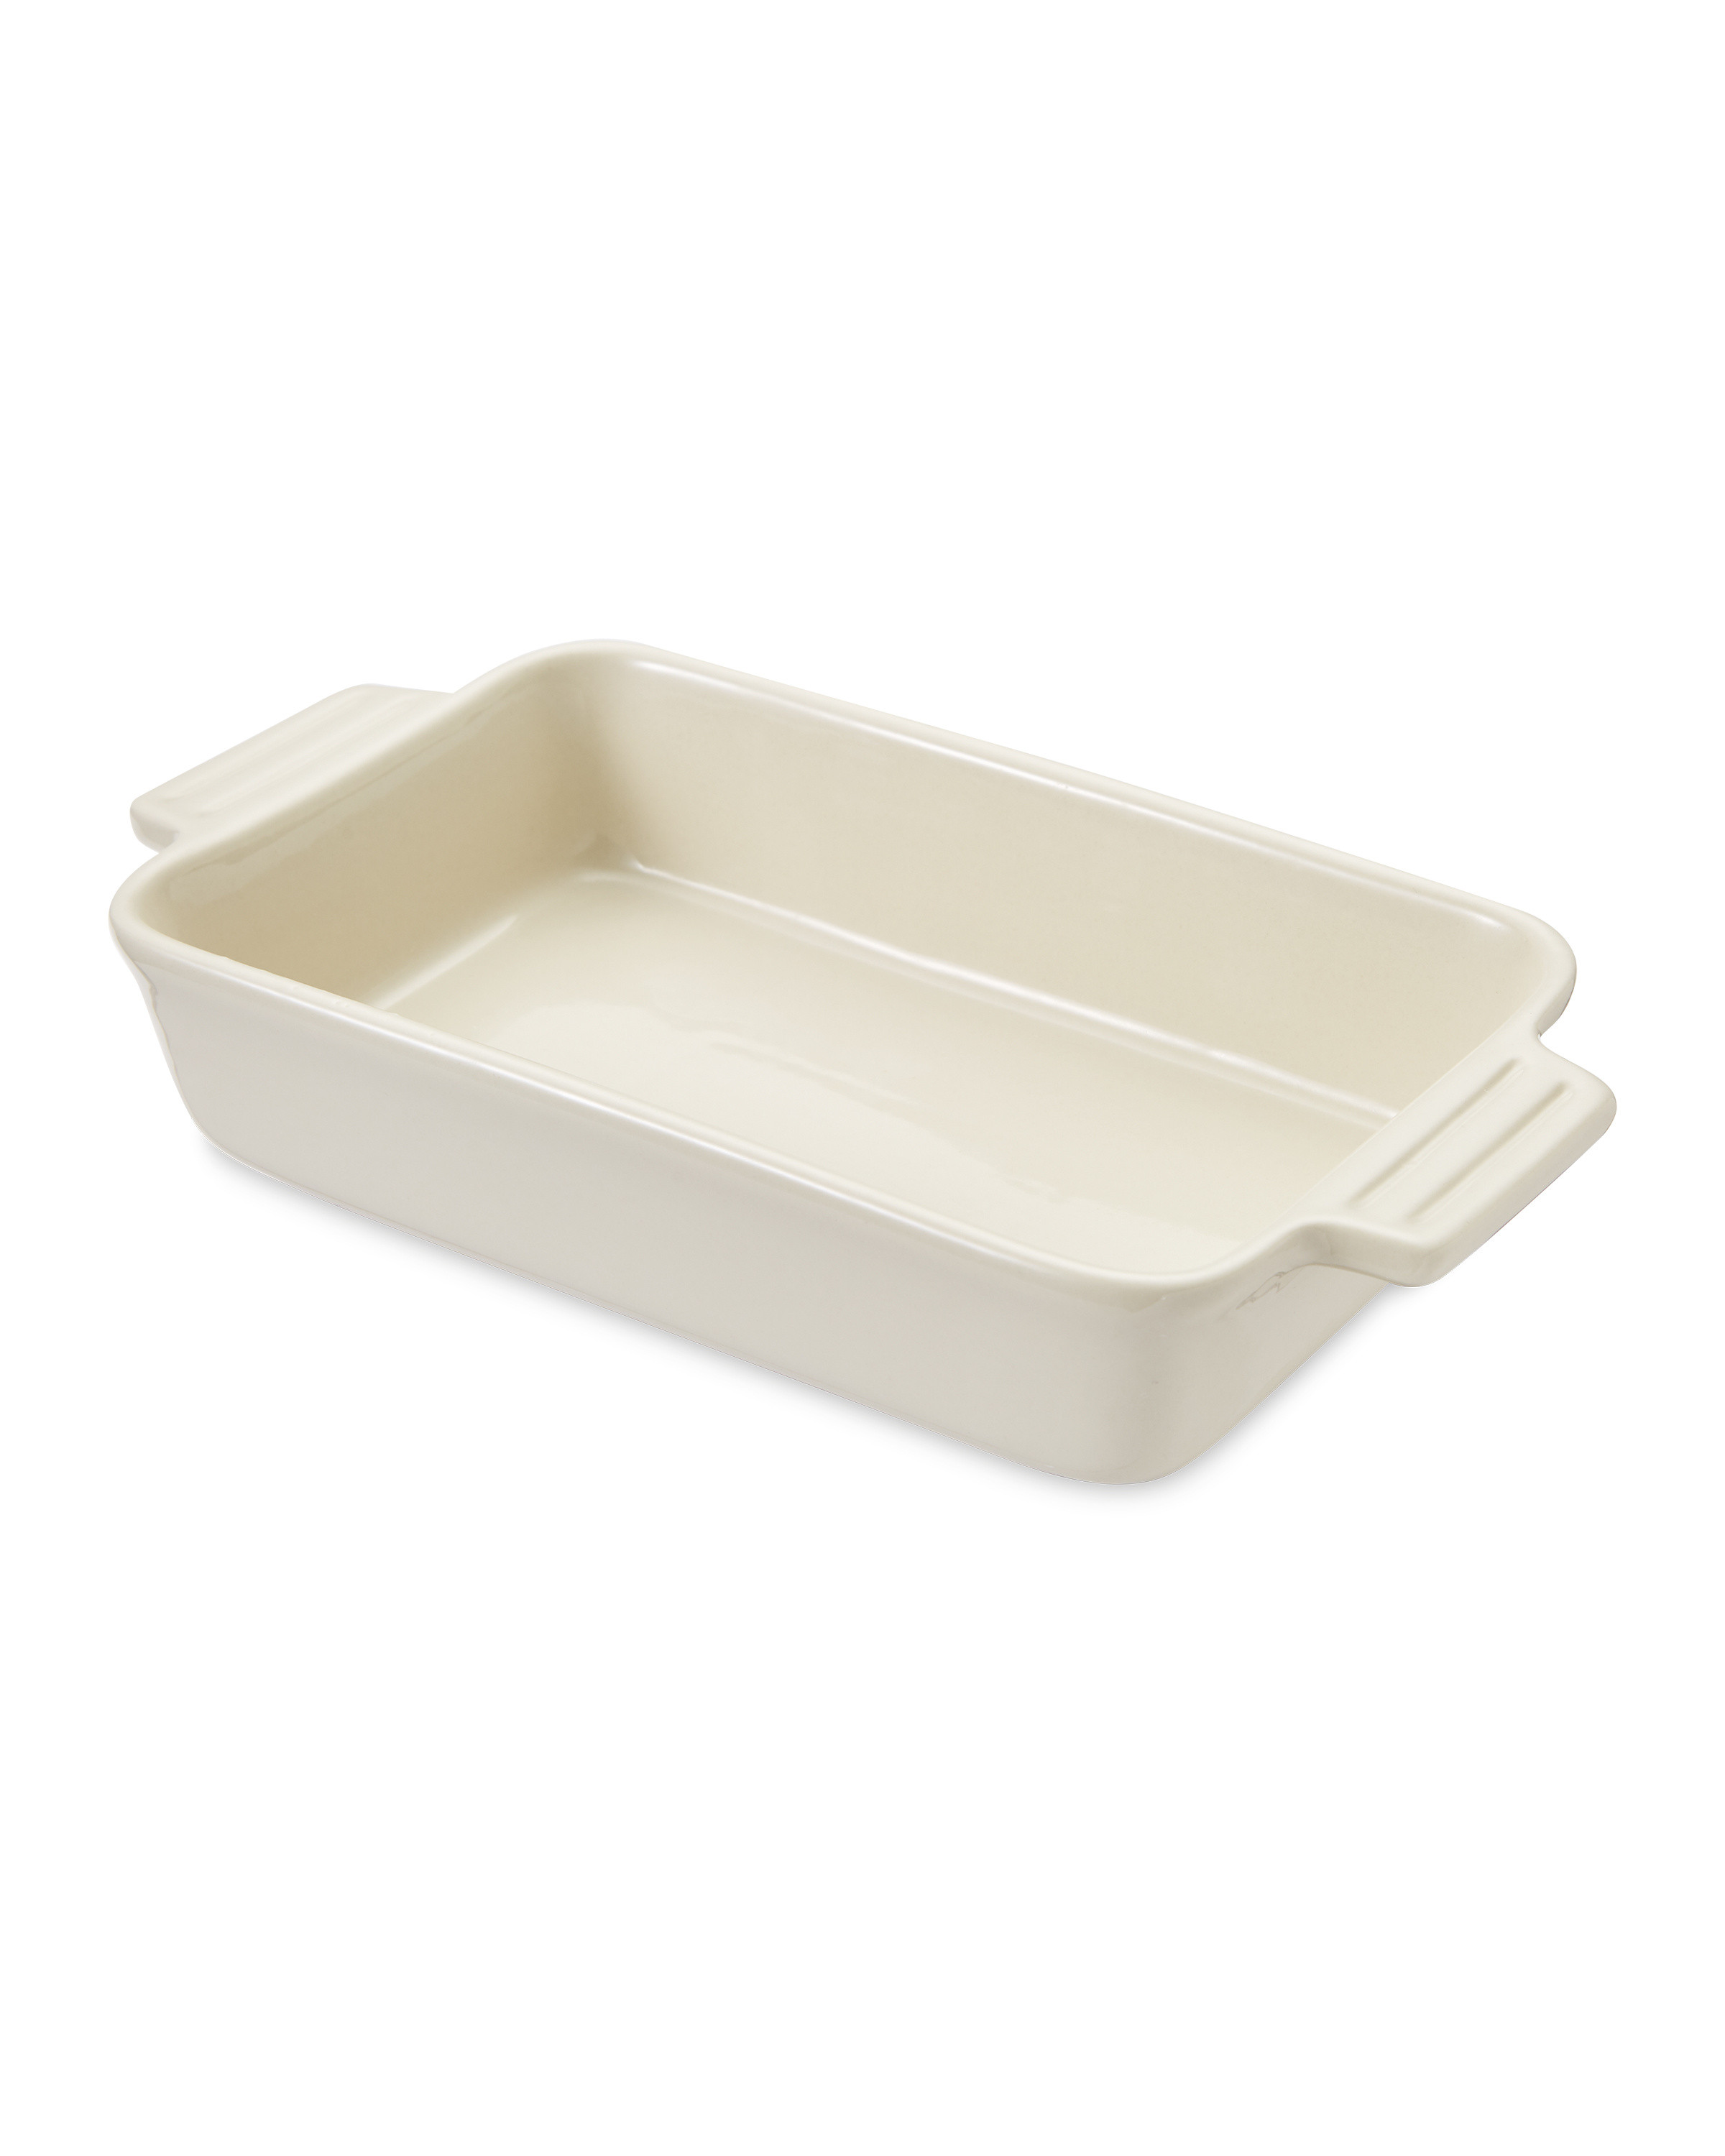 Cream Large Rectangle Oven/Tableware